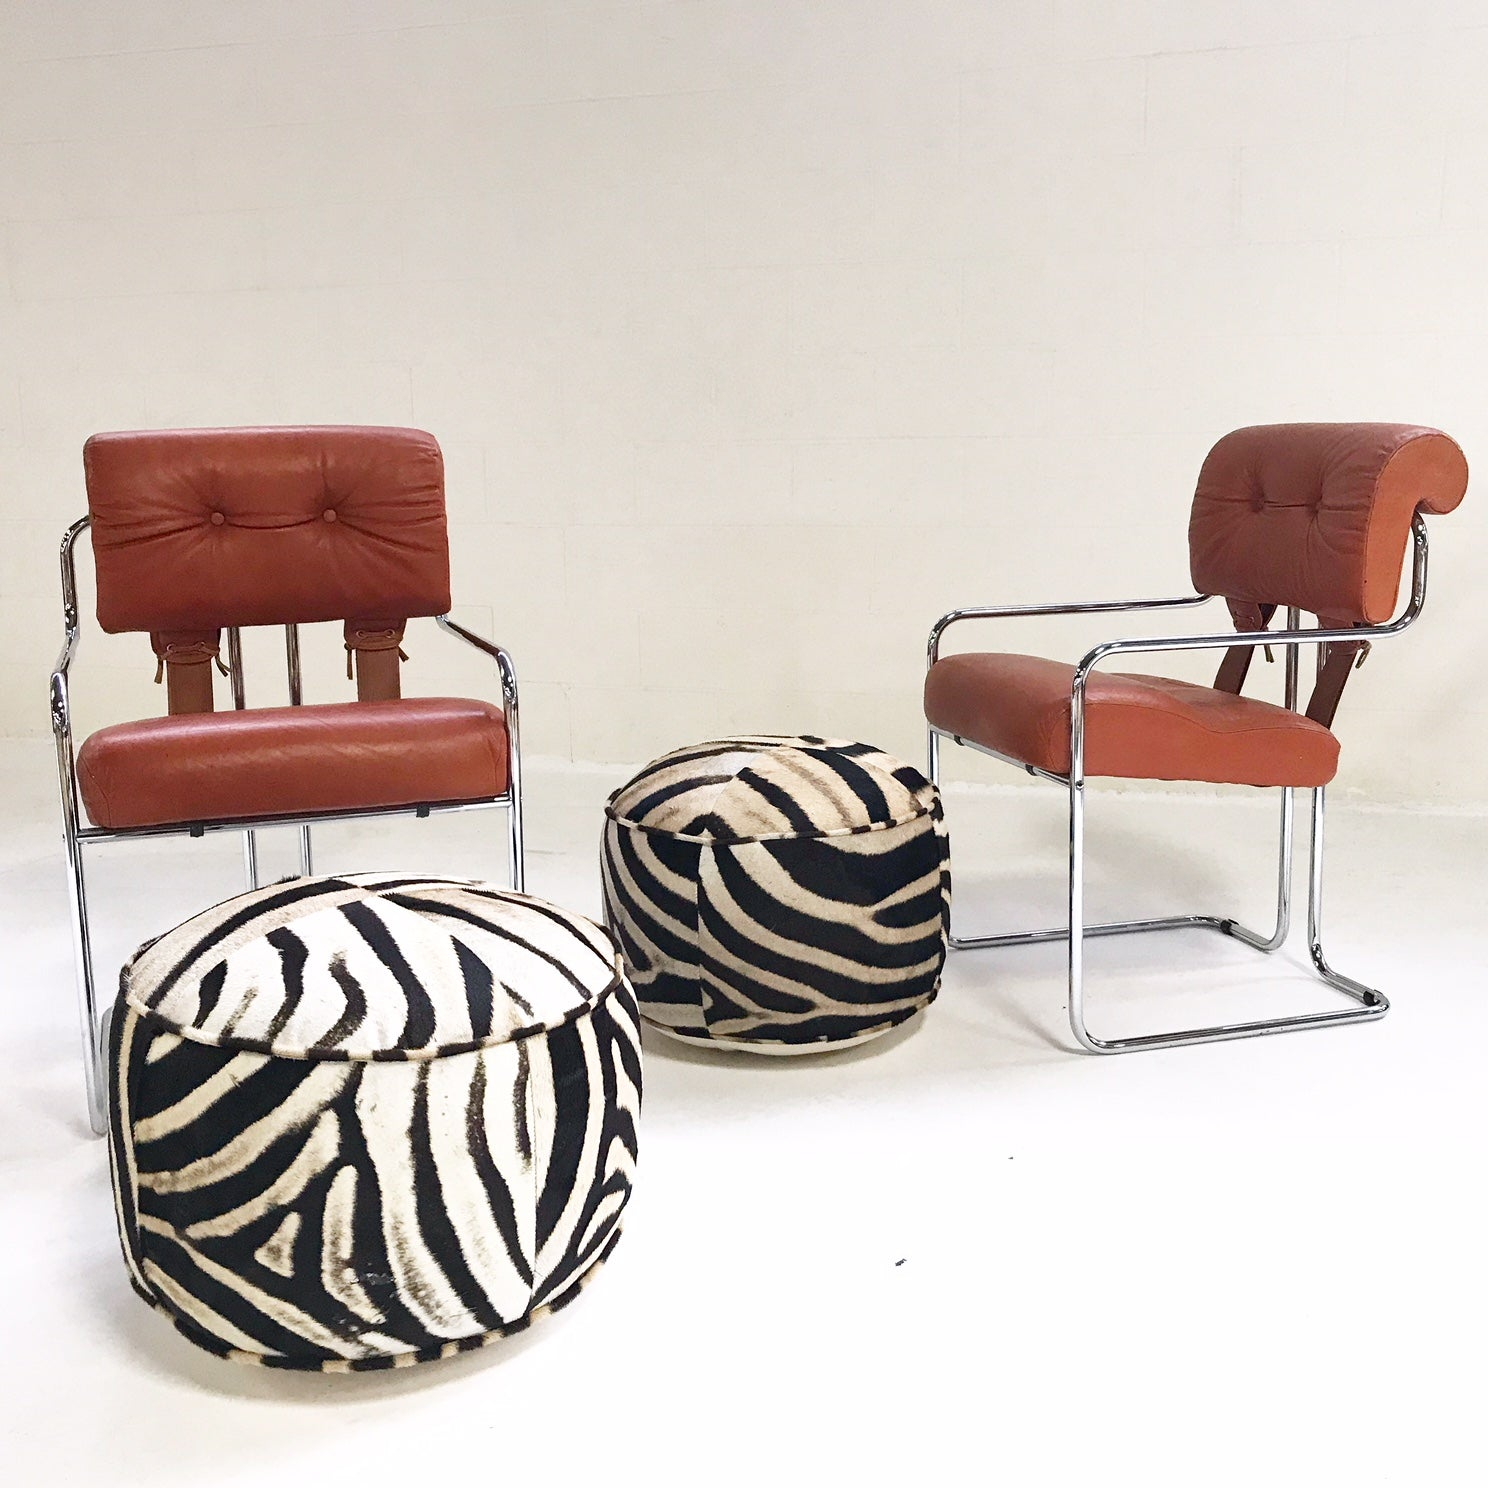 Tucroma Chairs with Zebra Hide Pouf Ottomans - FORSYTH